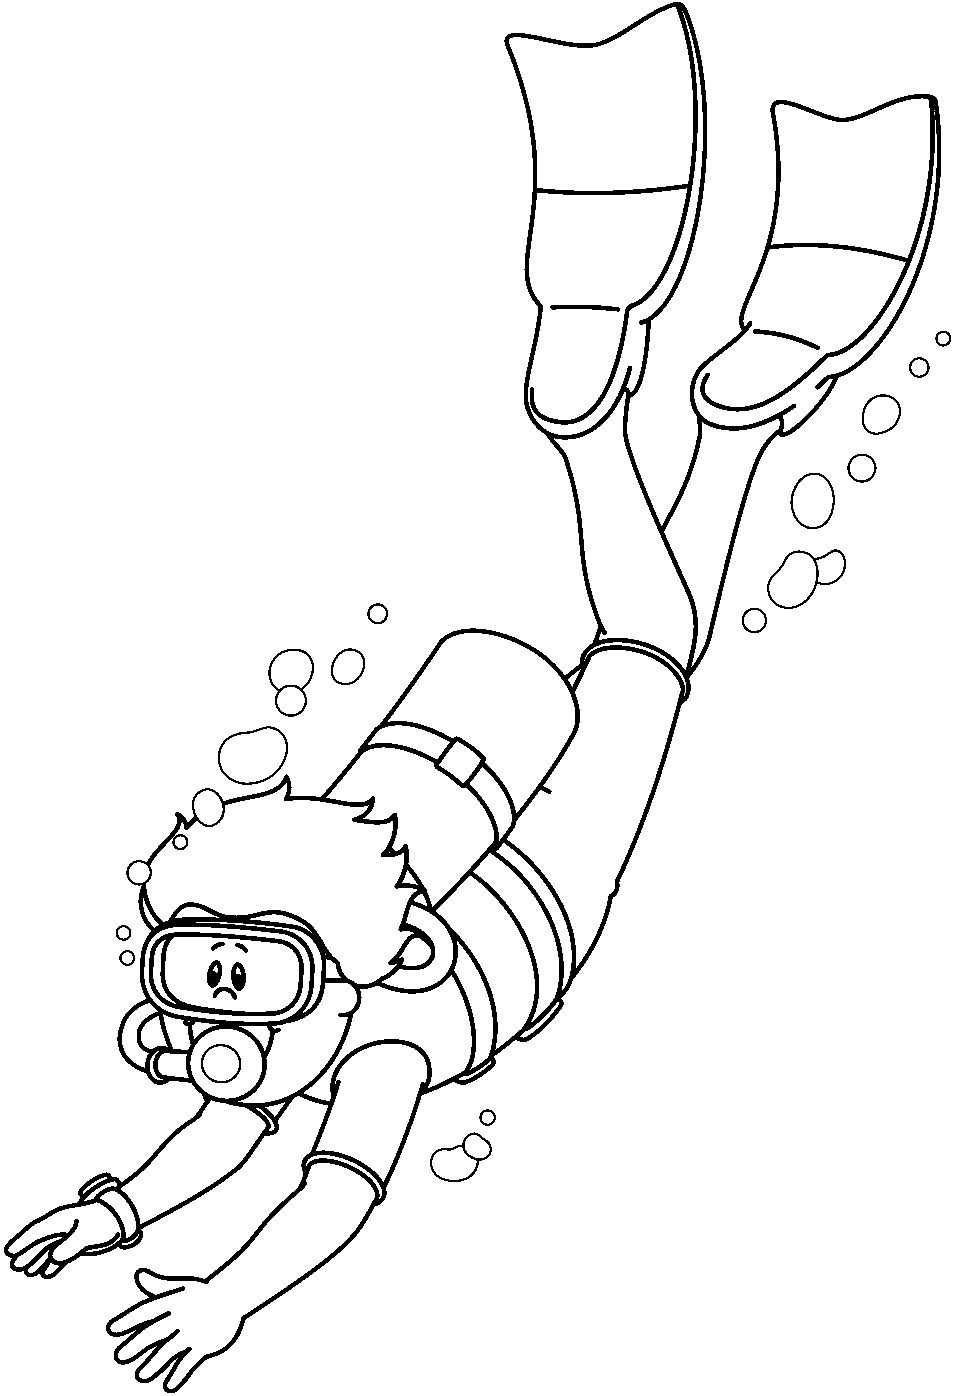 vbs deep sea adventure coloring pages | Pin by Lawrence Filler on Vbs 2016 | Sea, ocean, Ocean ...